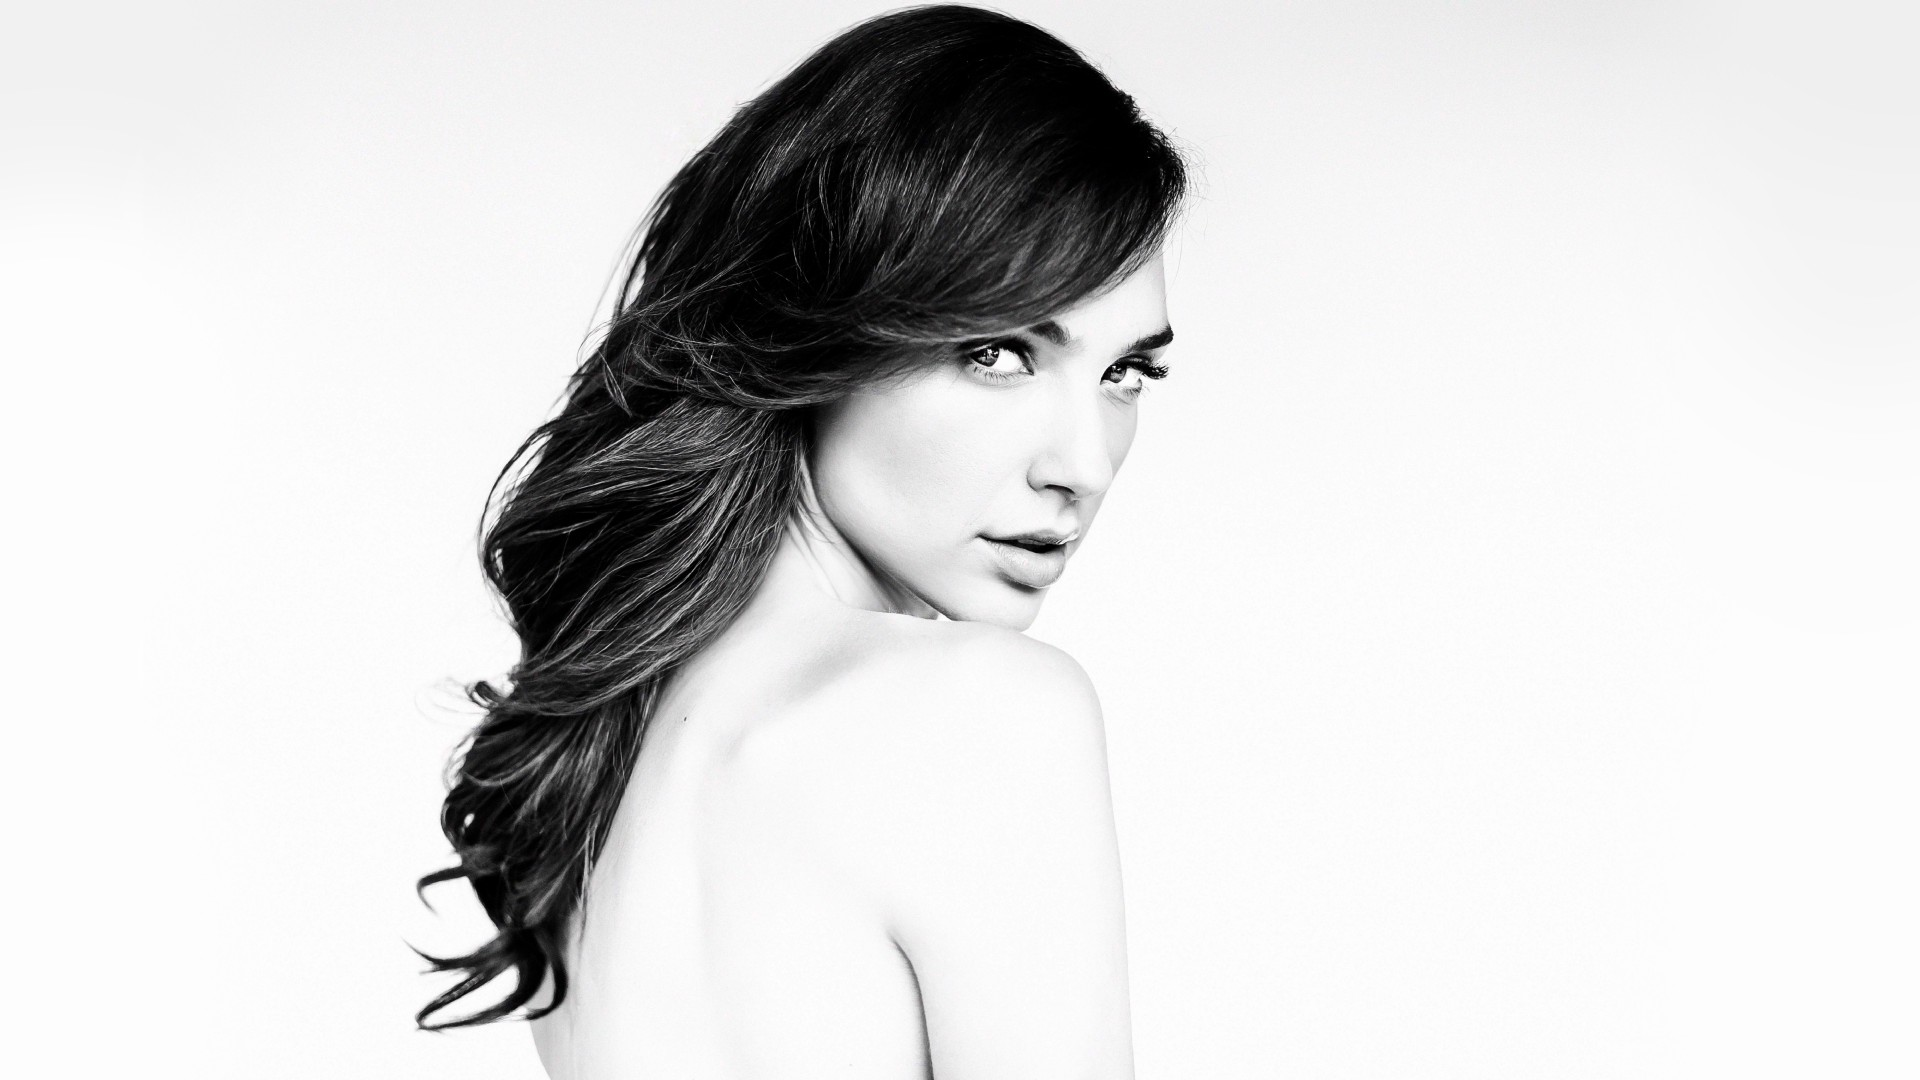 Best Iphone Retina Wallpaper Gal Gadot 4k 8k Wallpapers Hd Wallpapers Id 19761